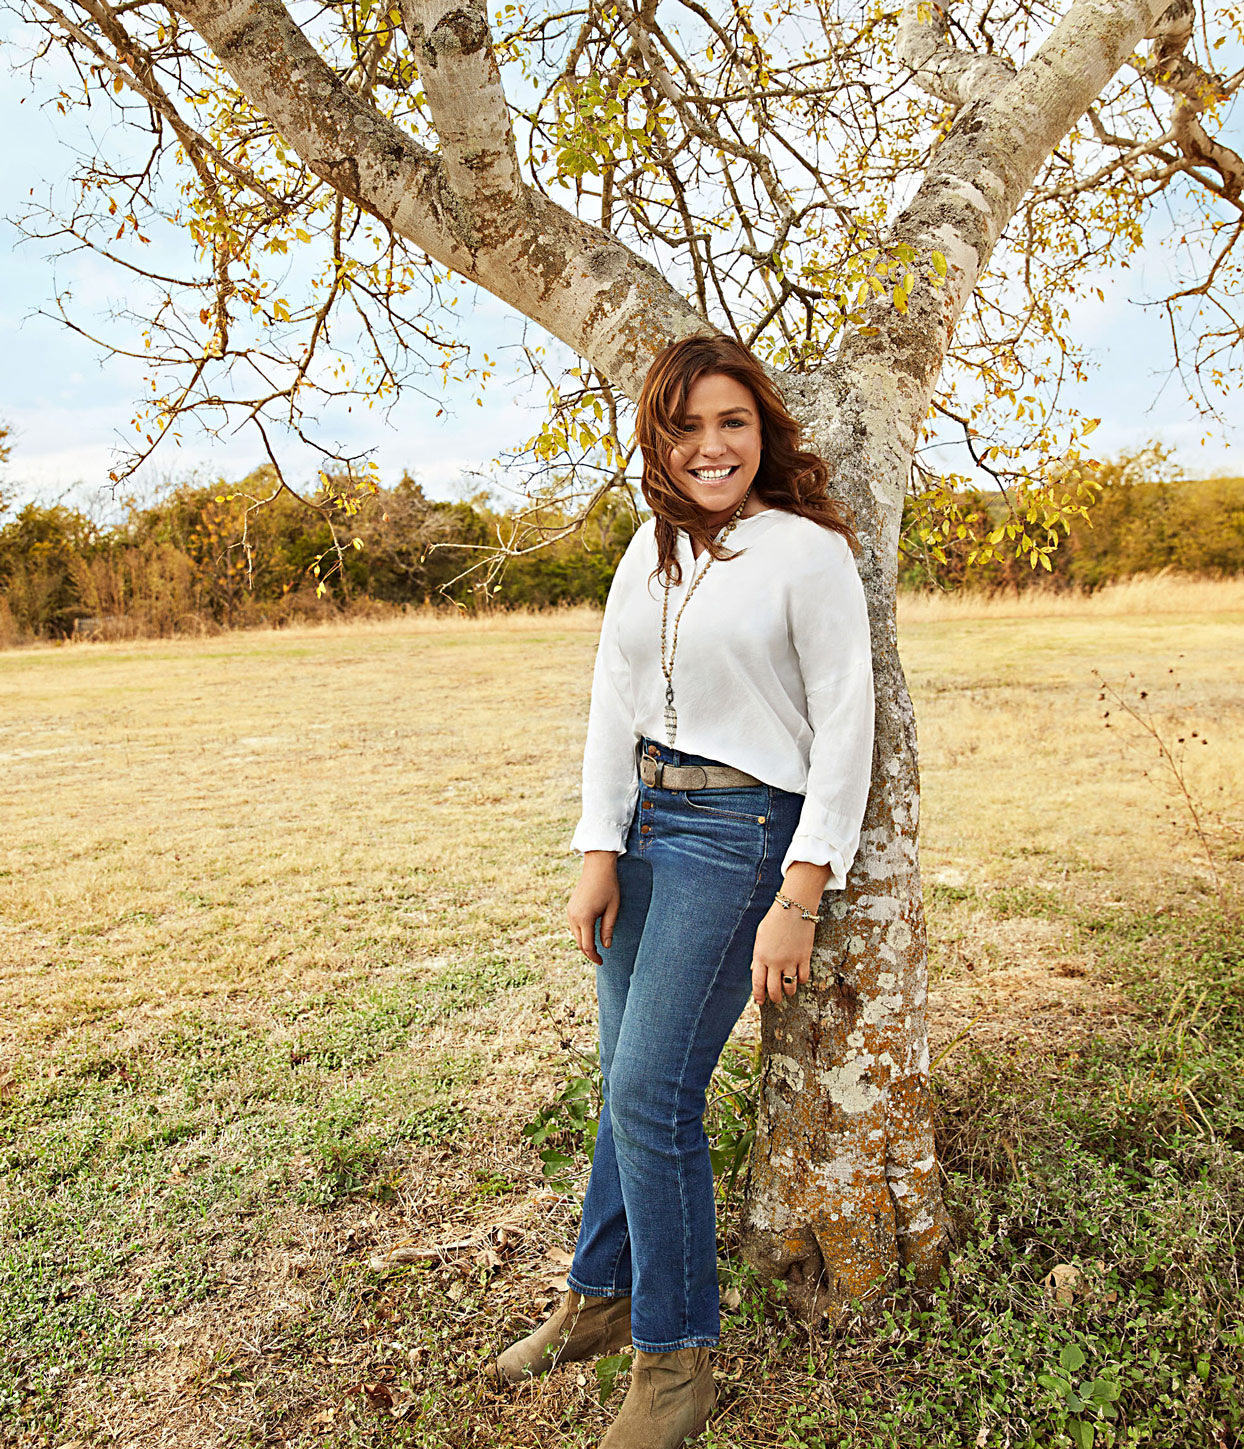 Rachael Ray leaning against tree